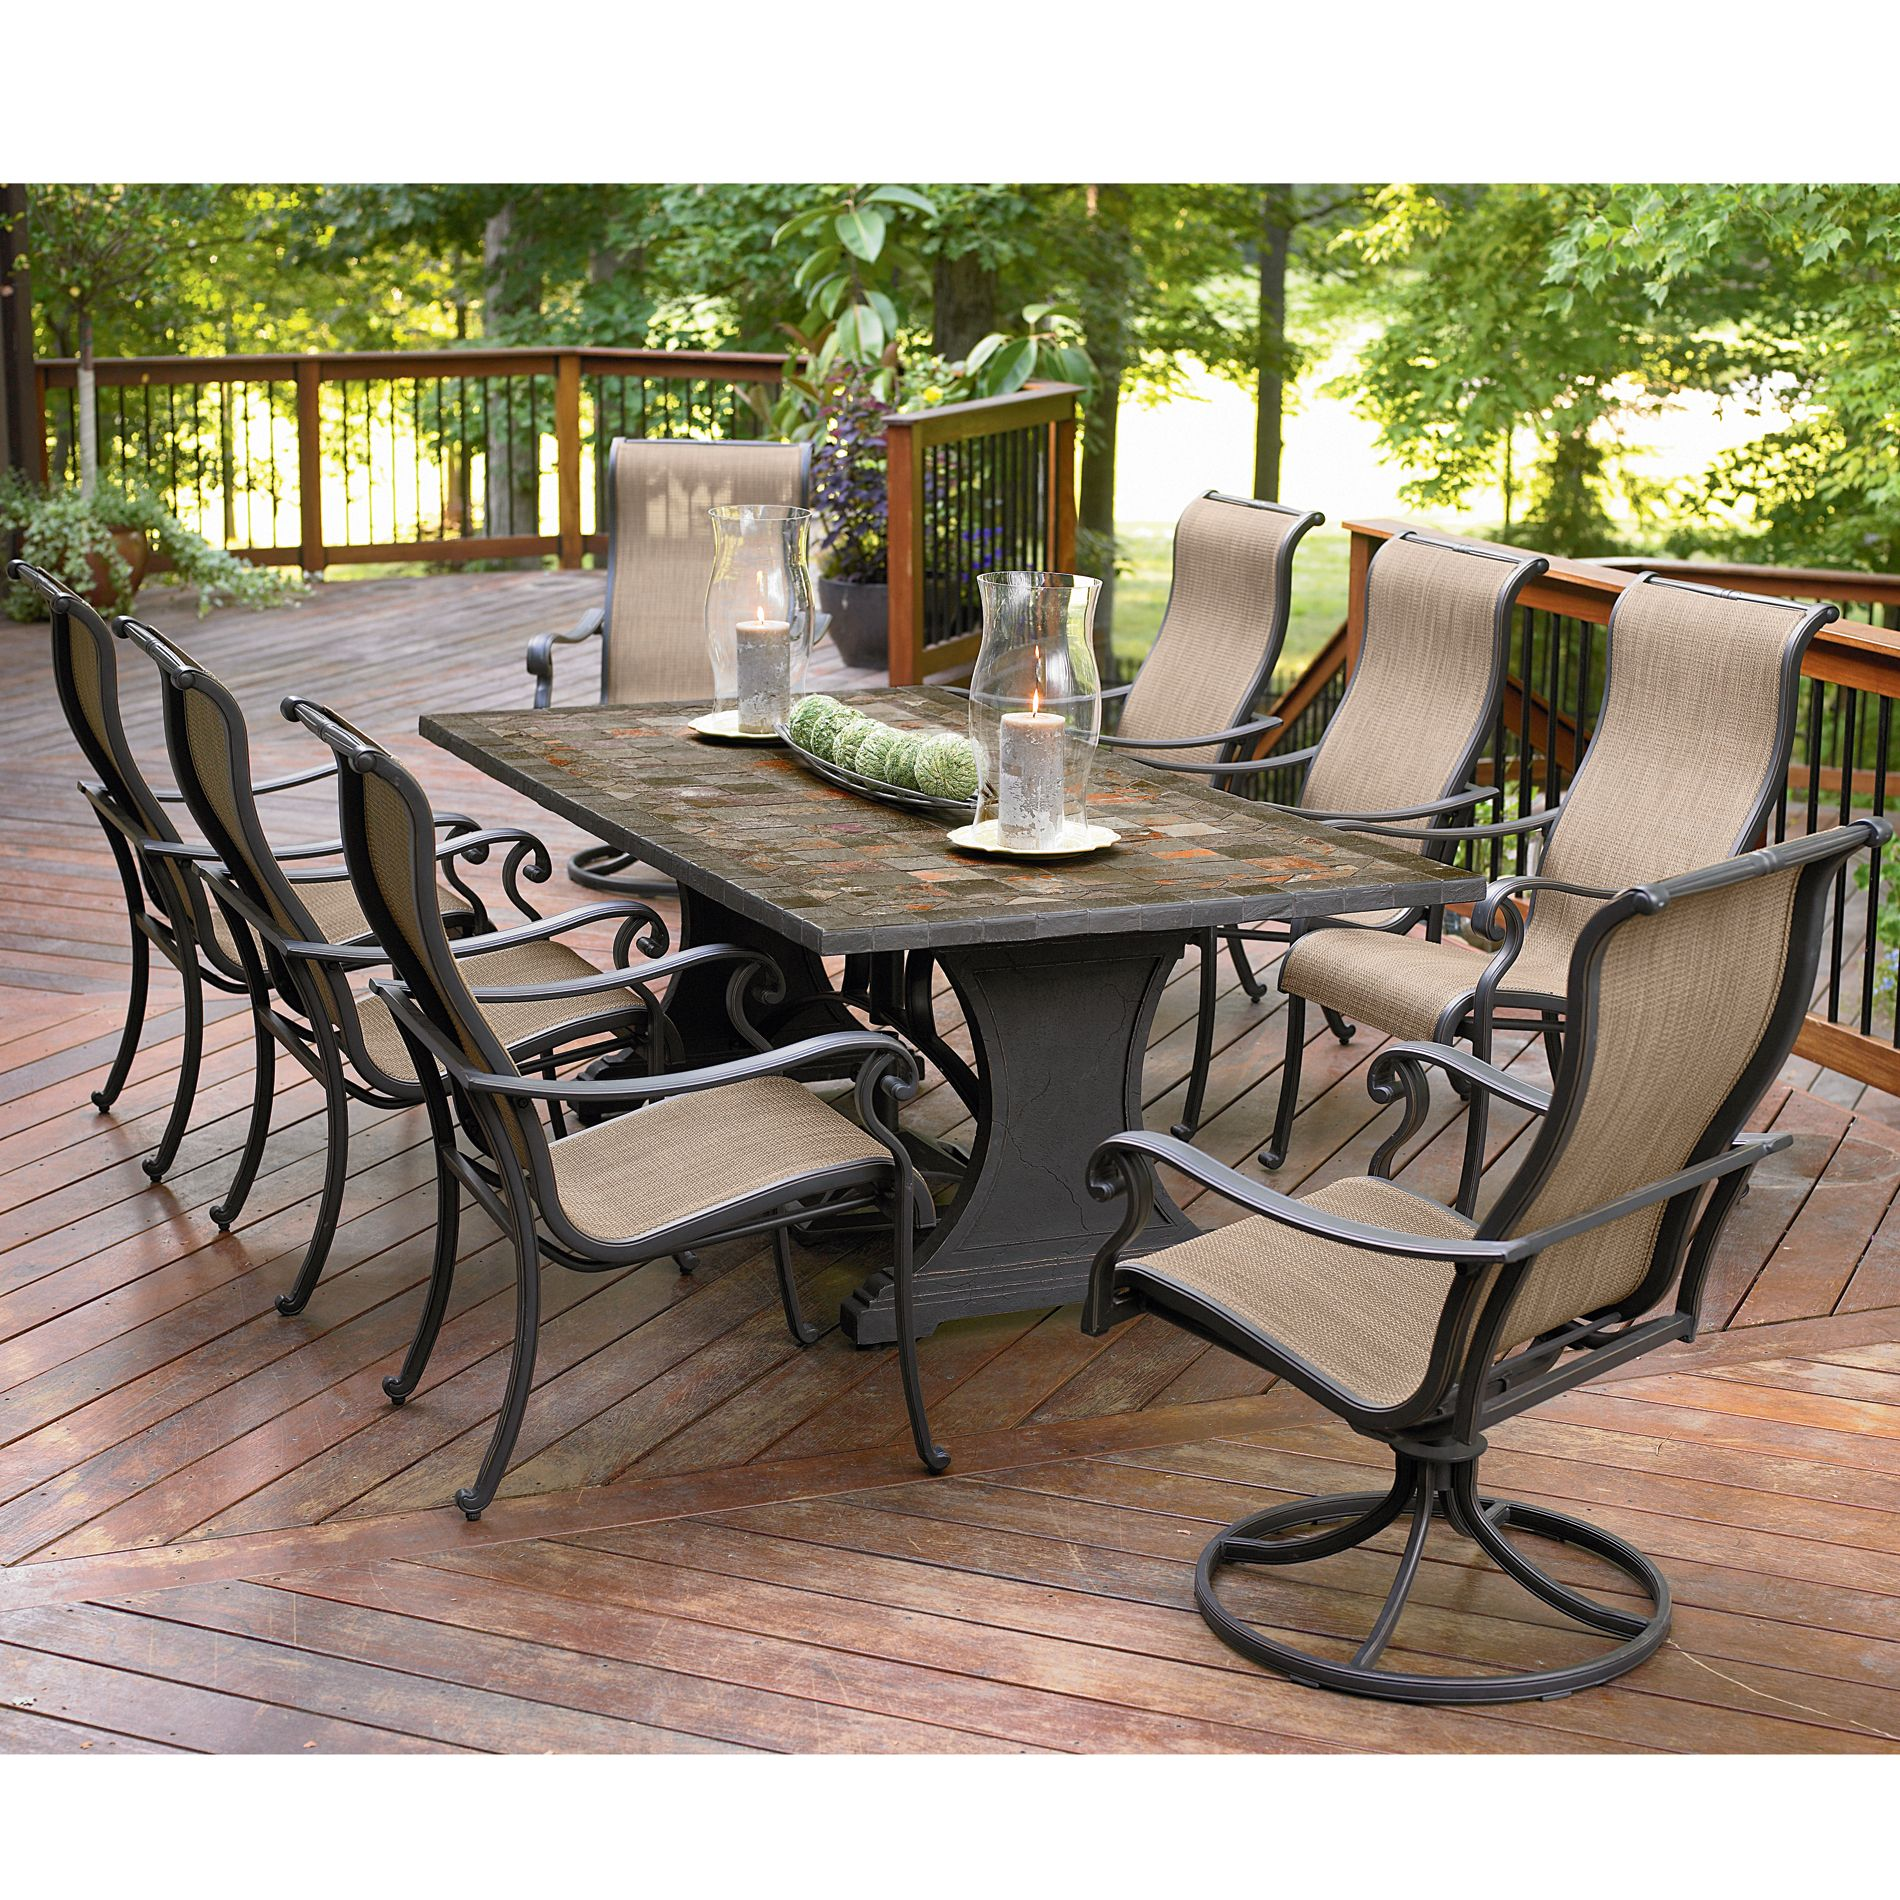 Patio Table Sets At Sears